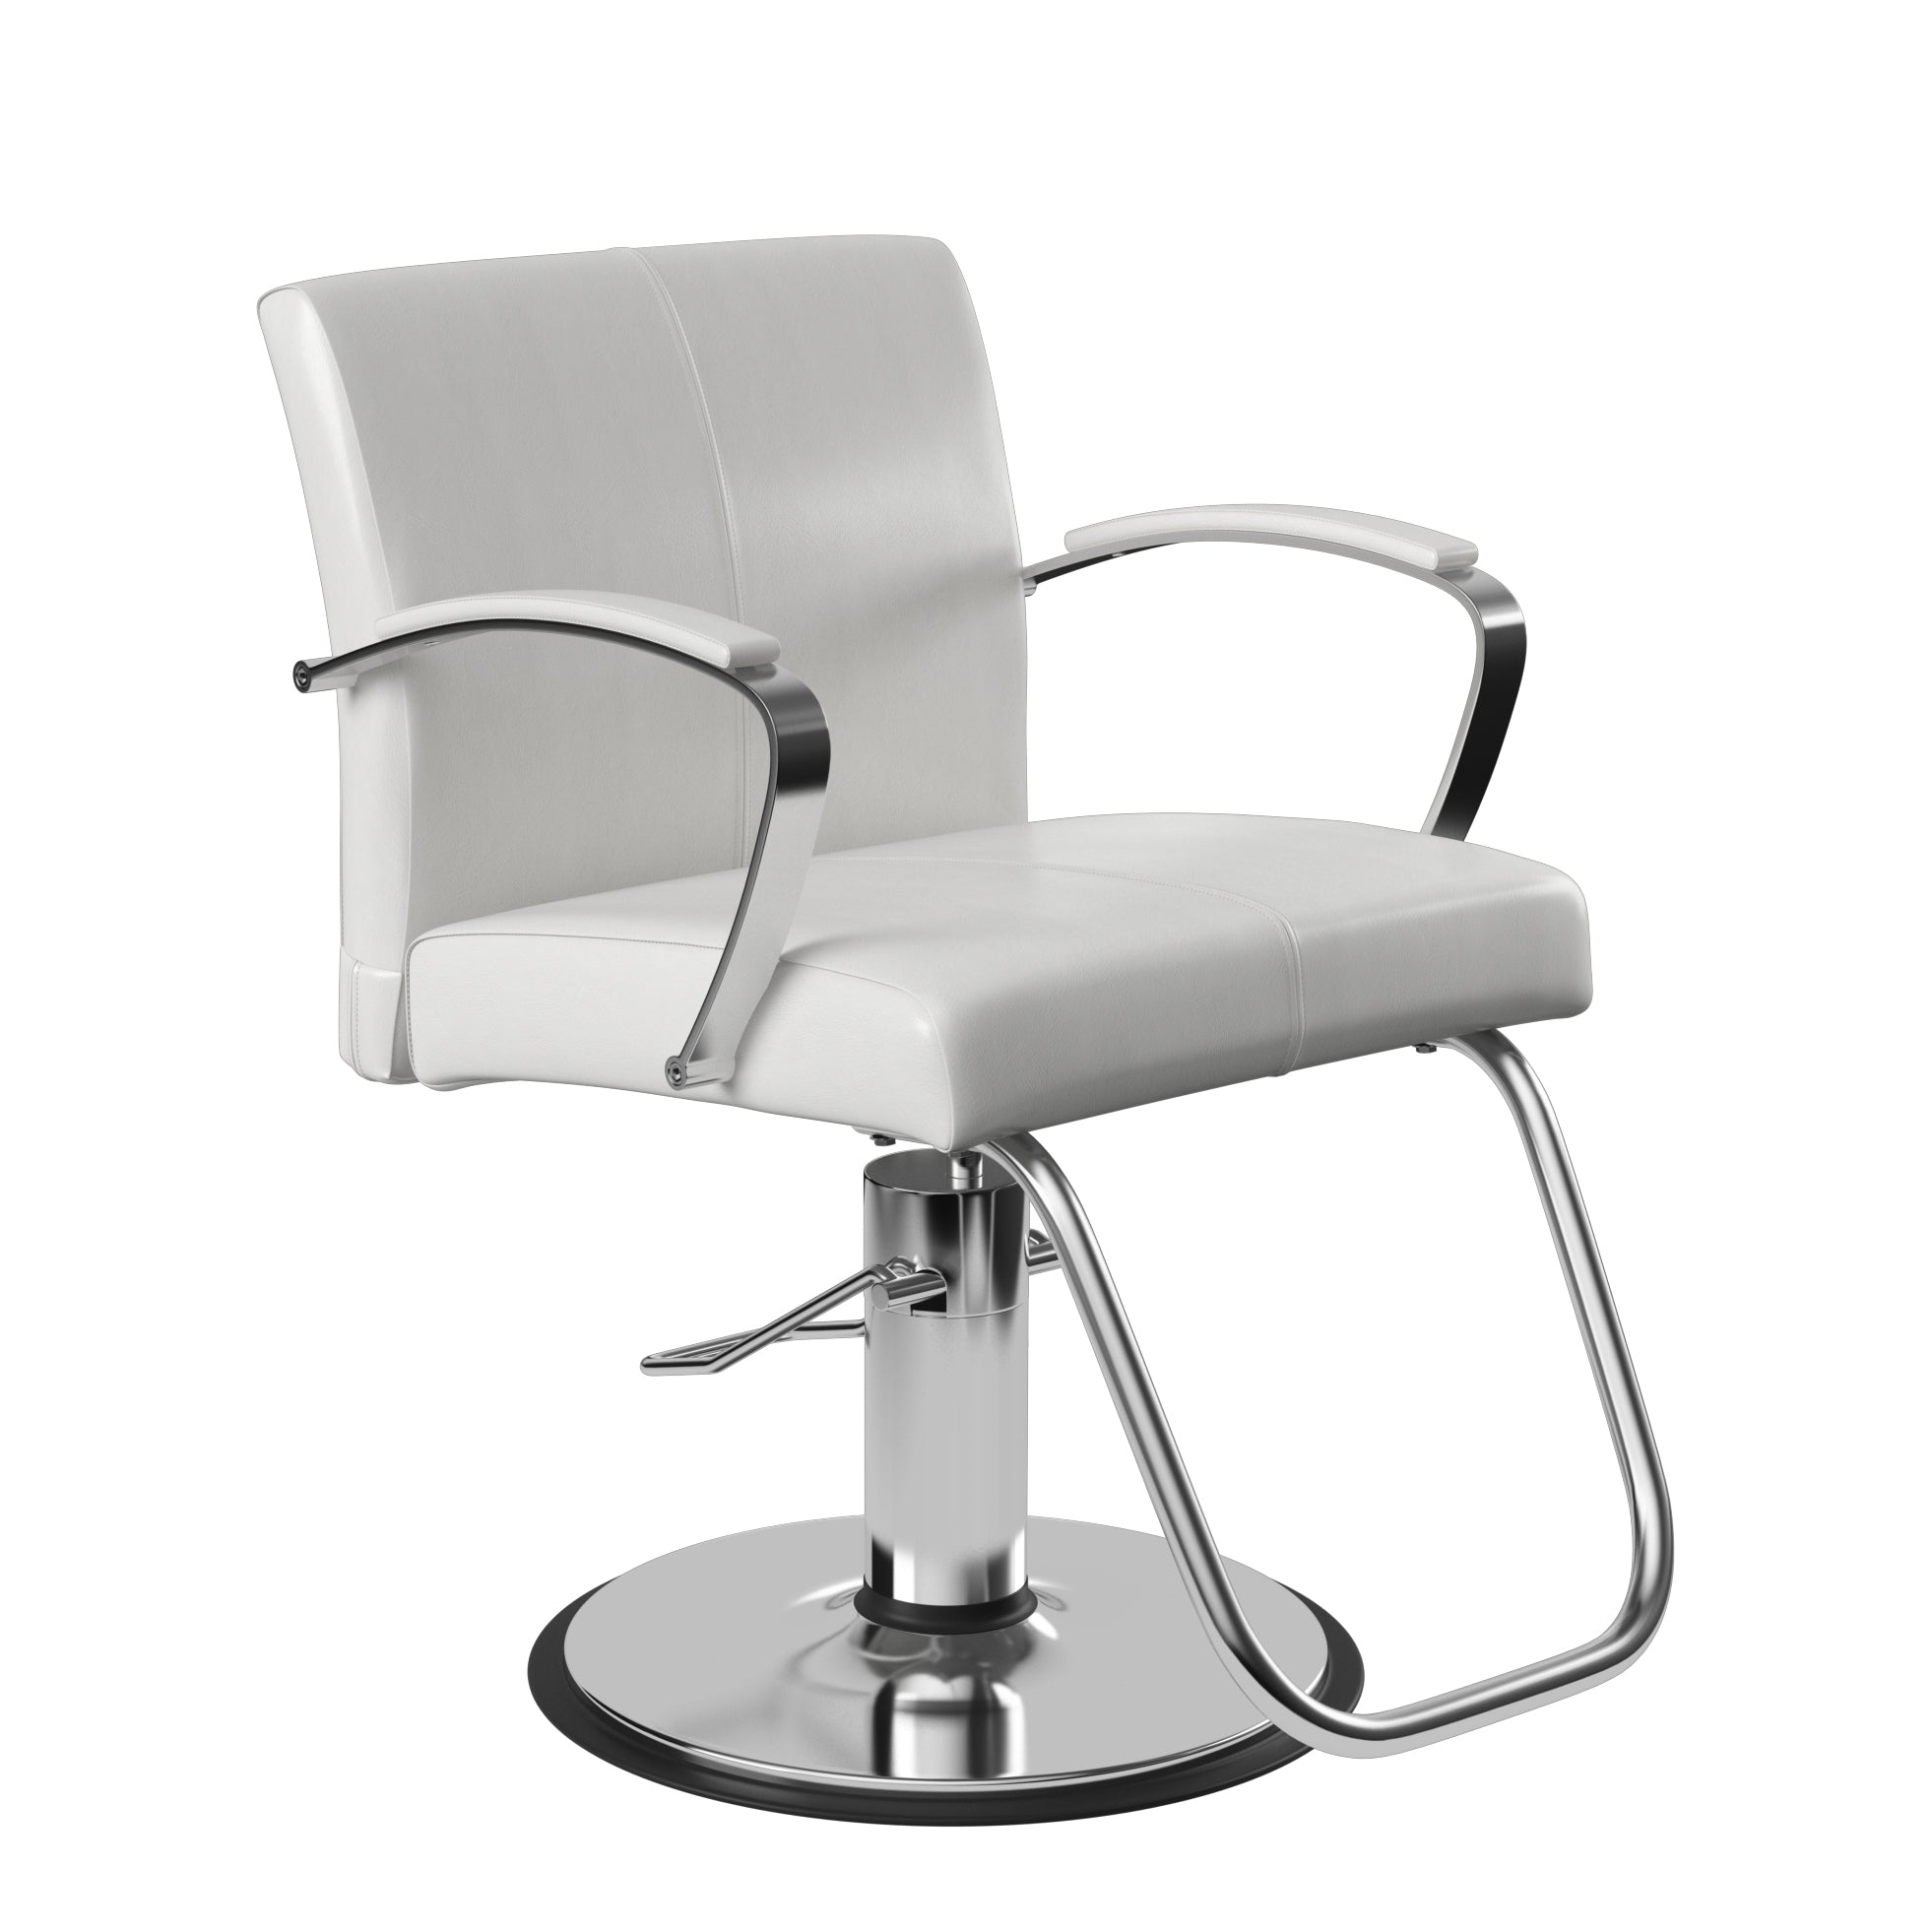 Mallory Plush Styling Chair - Collins - Salon Equipment and Barber Equipment